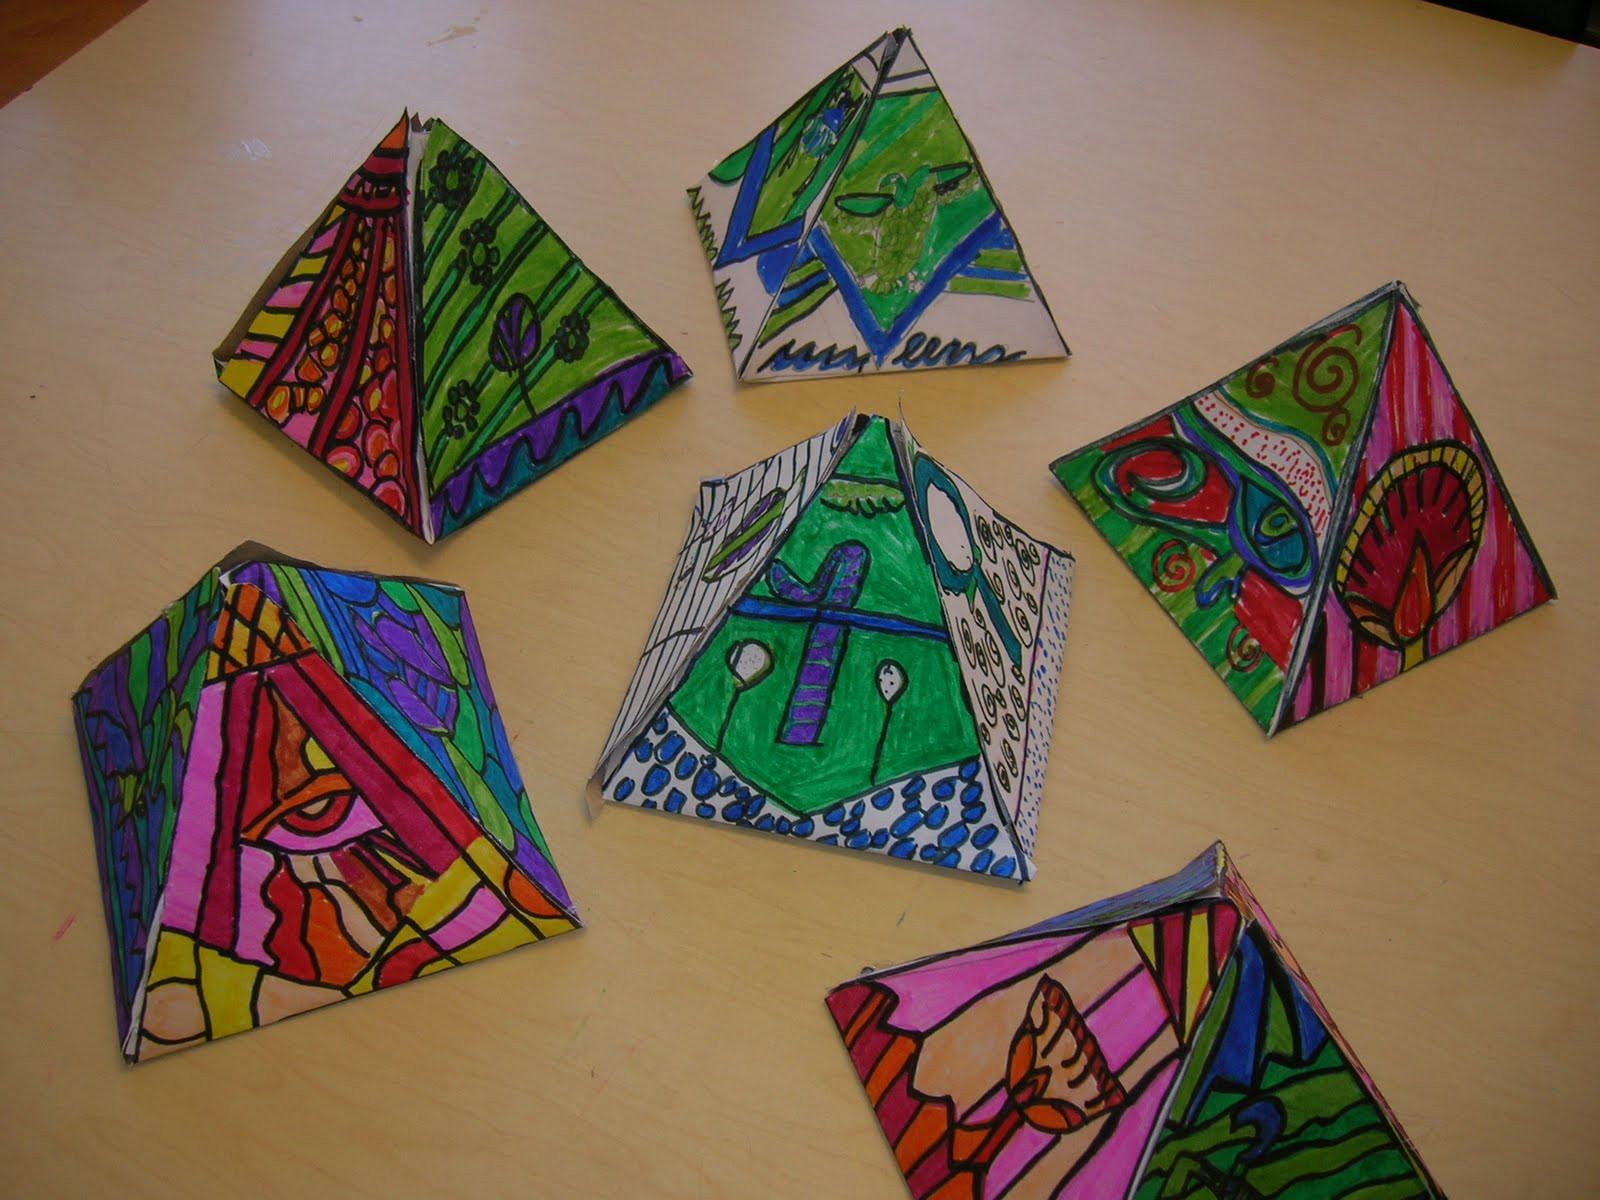 Best ideas about Elementry Art Projects . Save or Pin The Elementary Art Room April 2011 Now.